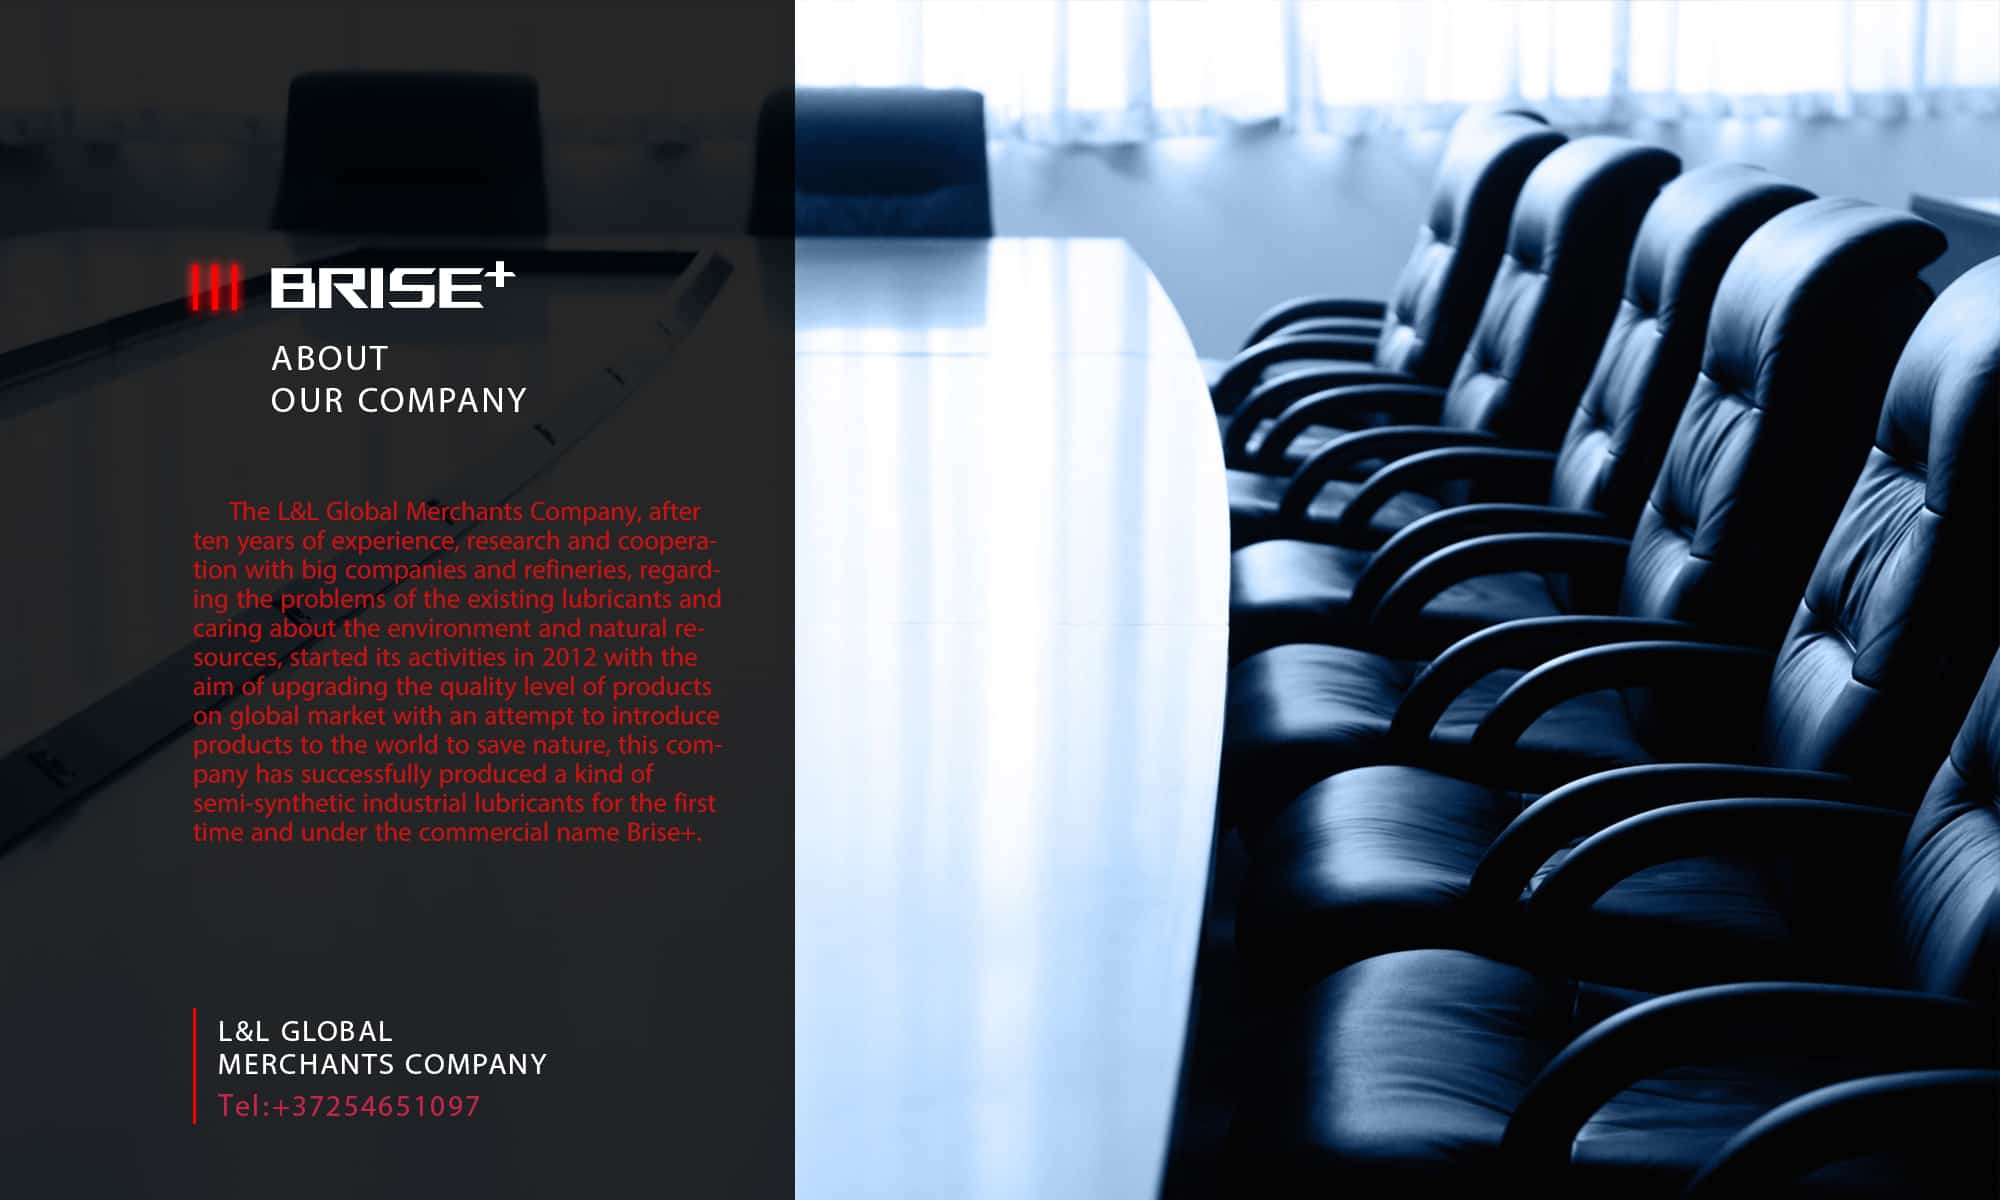 BRISE PLUS MEETING ROOM AND TEXT ABOUT COMPANY